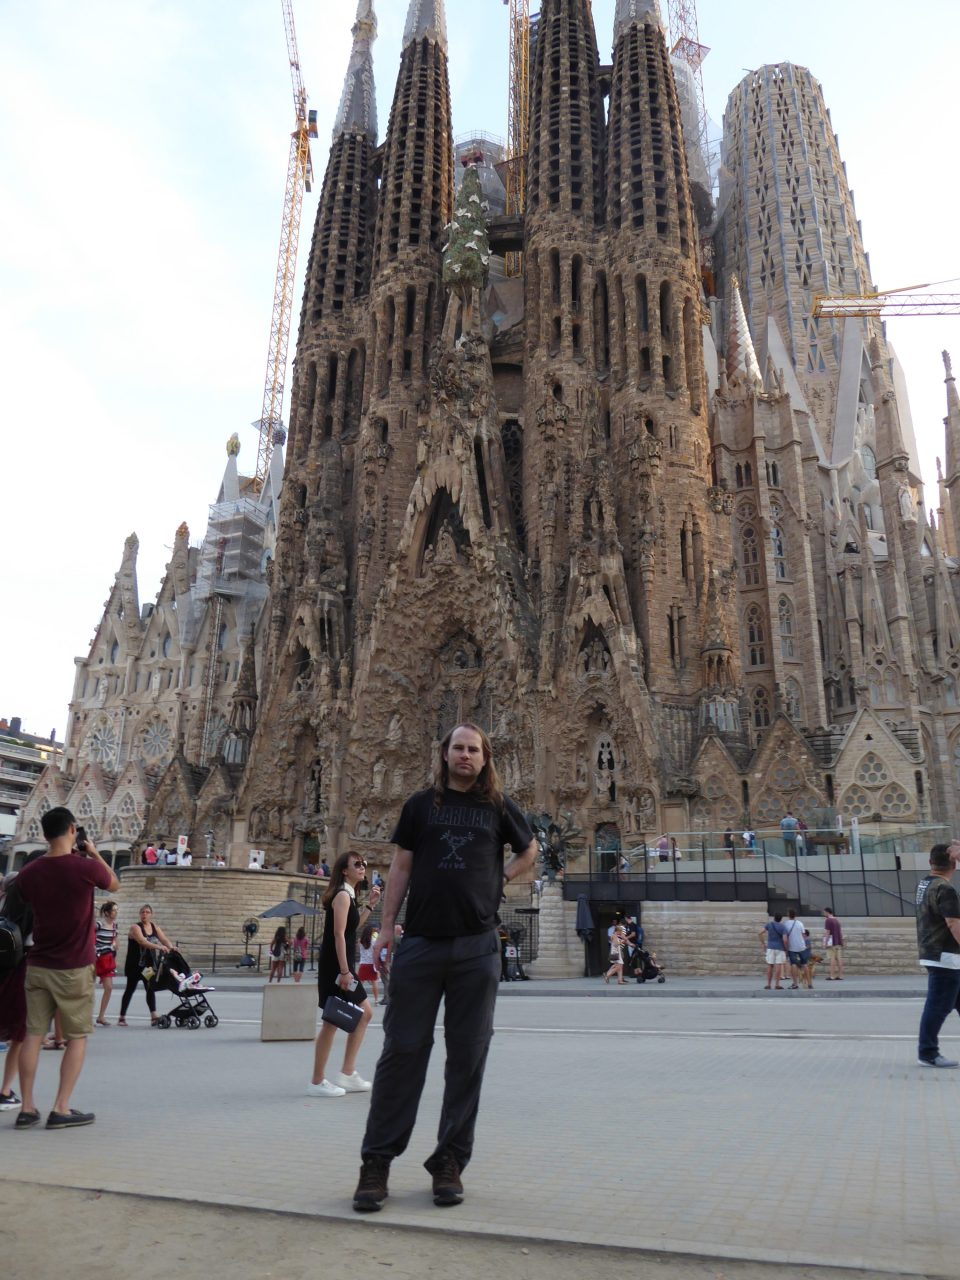 Things to do in Barcelona - vie wof the outside of Sagrada Família